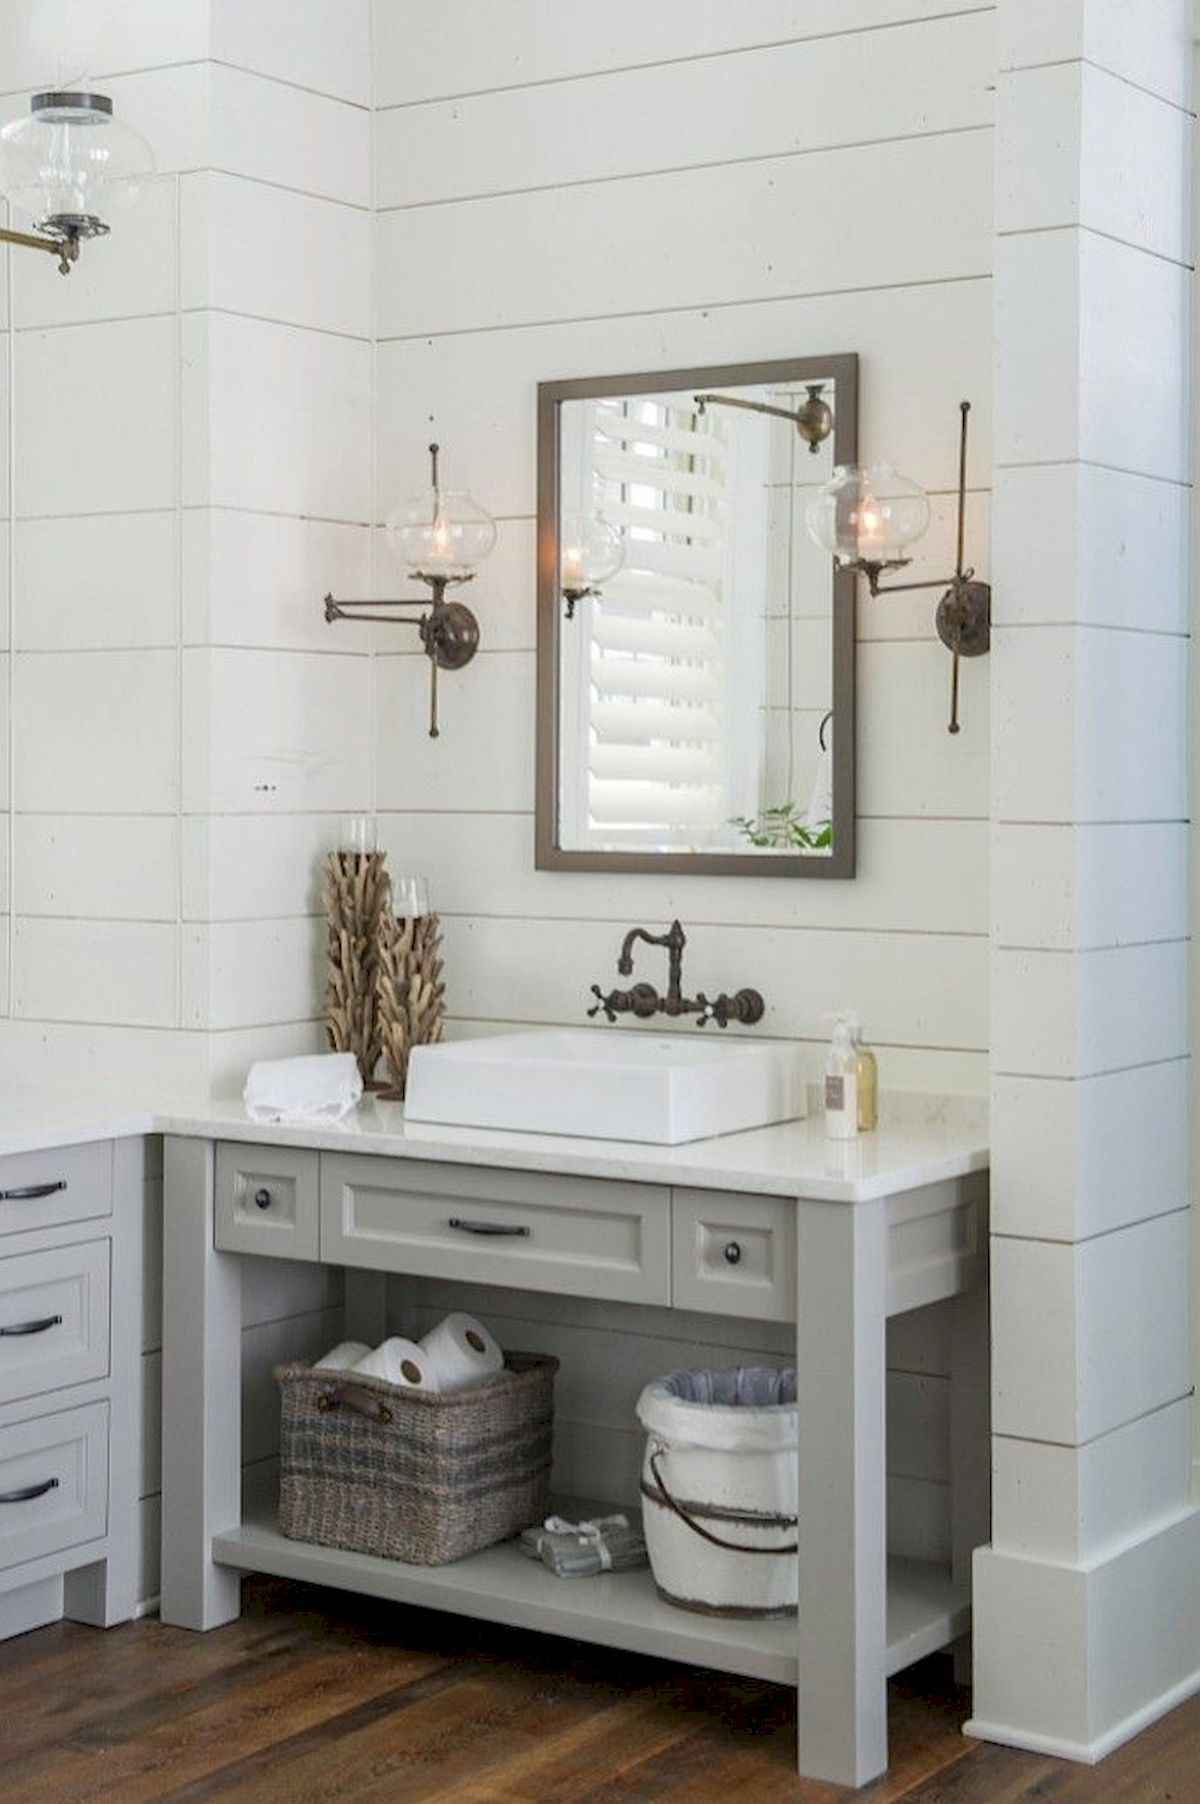 50 Lighting For Farmhouse Bathroom Ideas Decorating And Remodel (9 ...